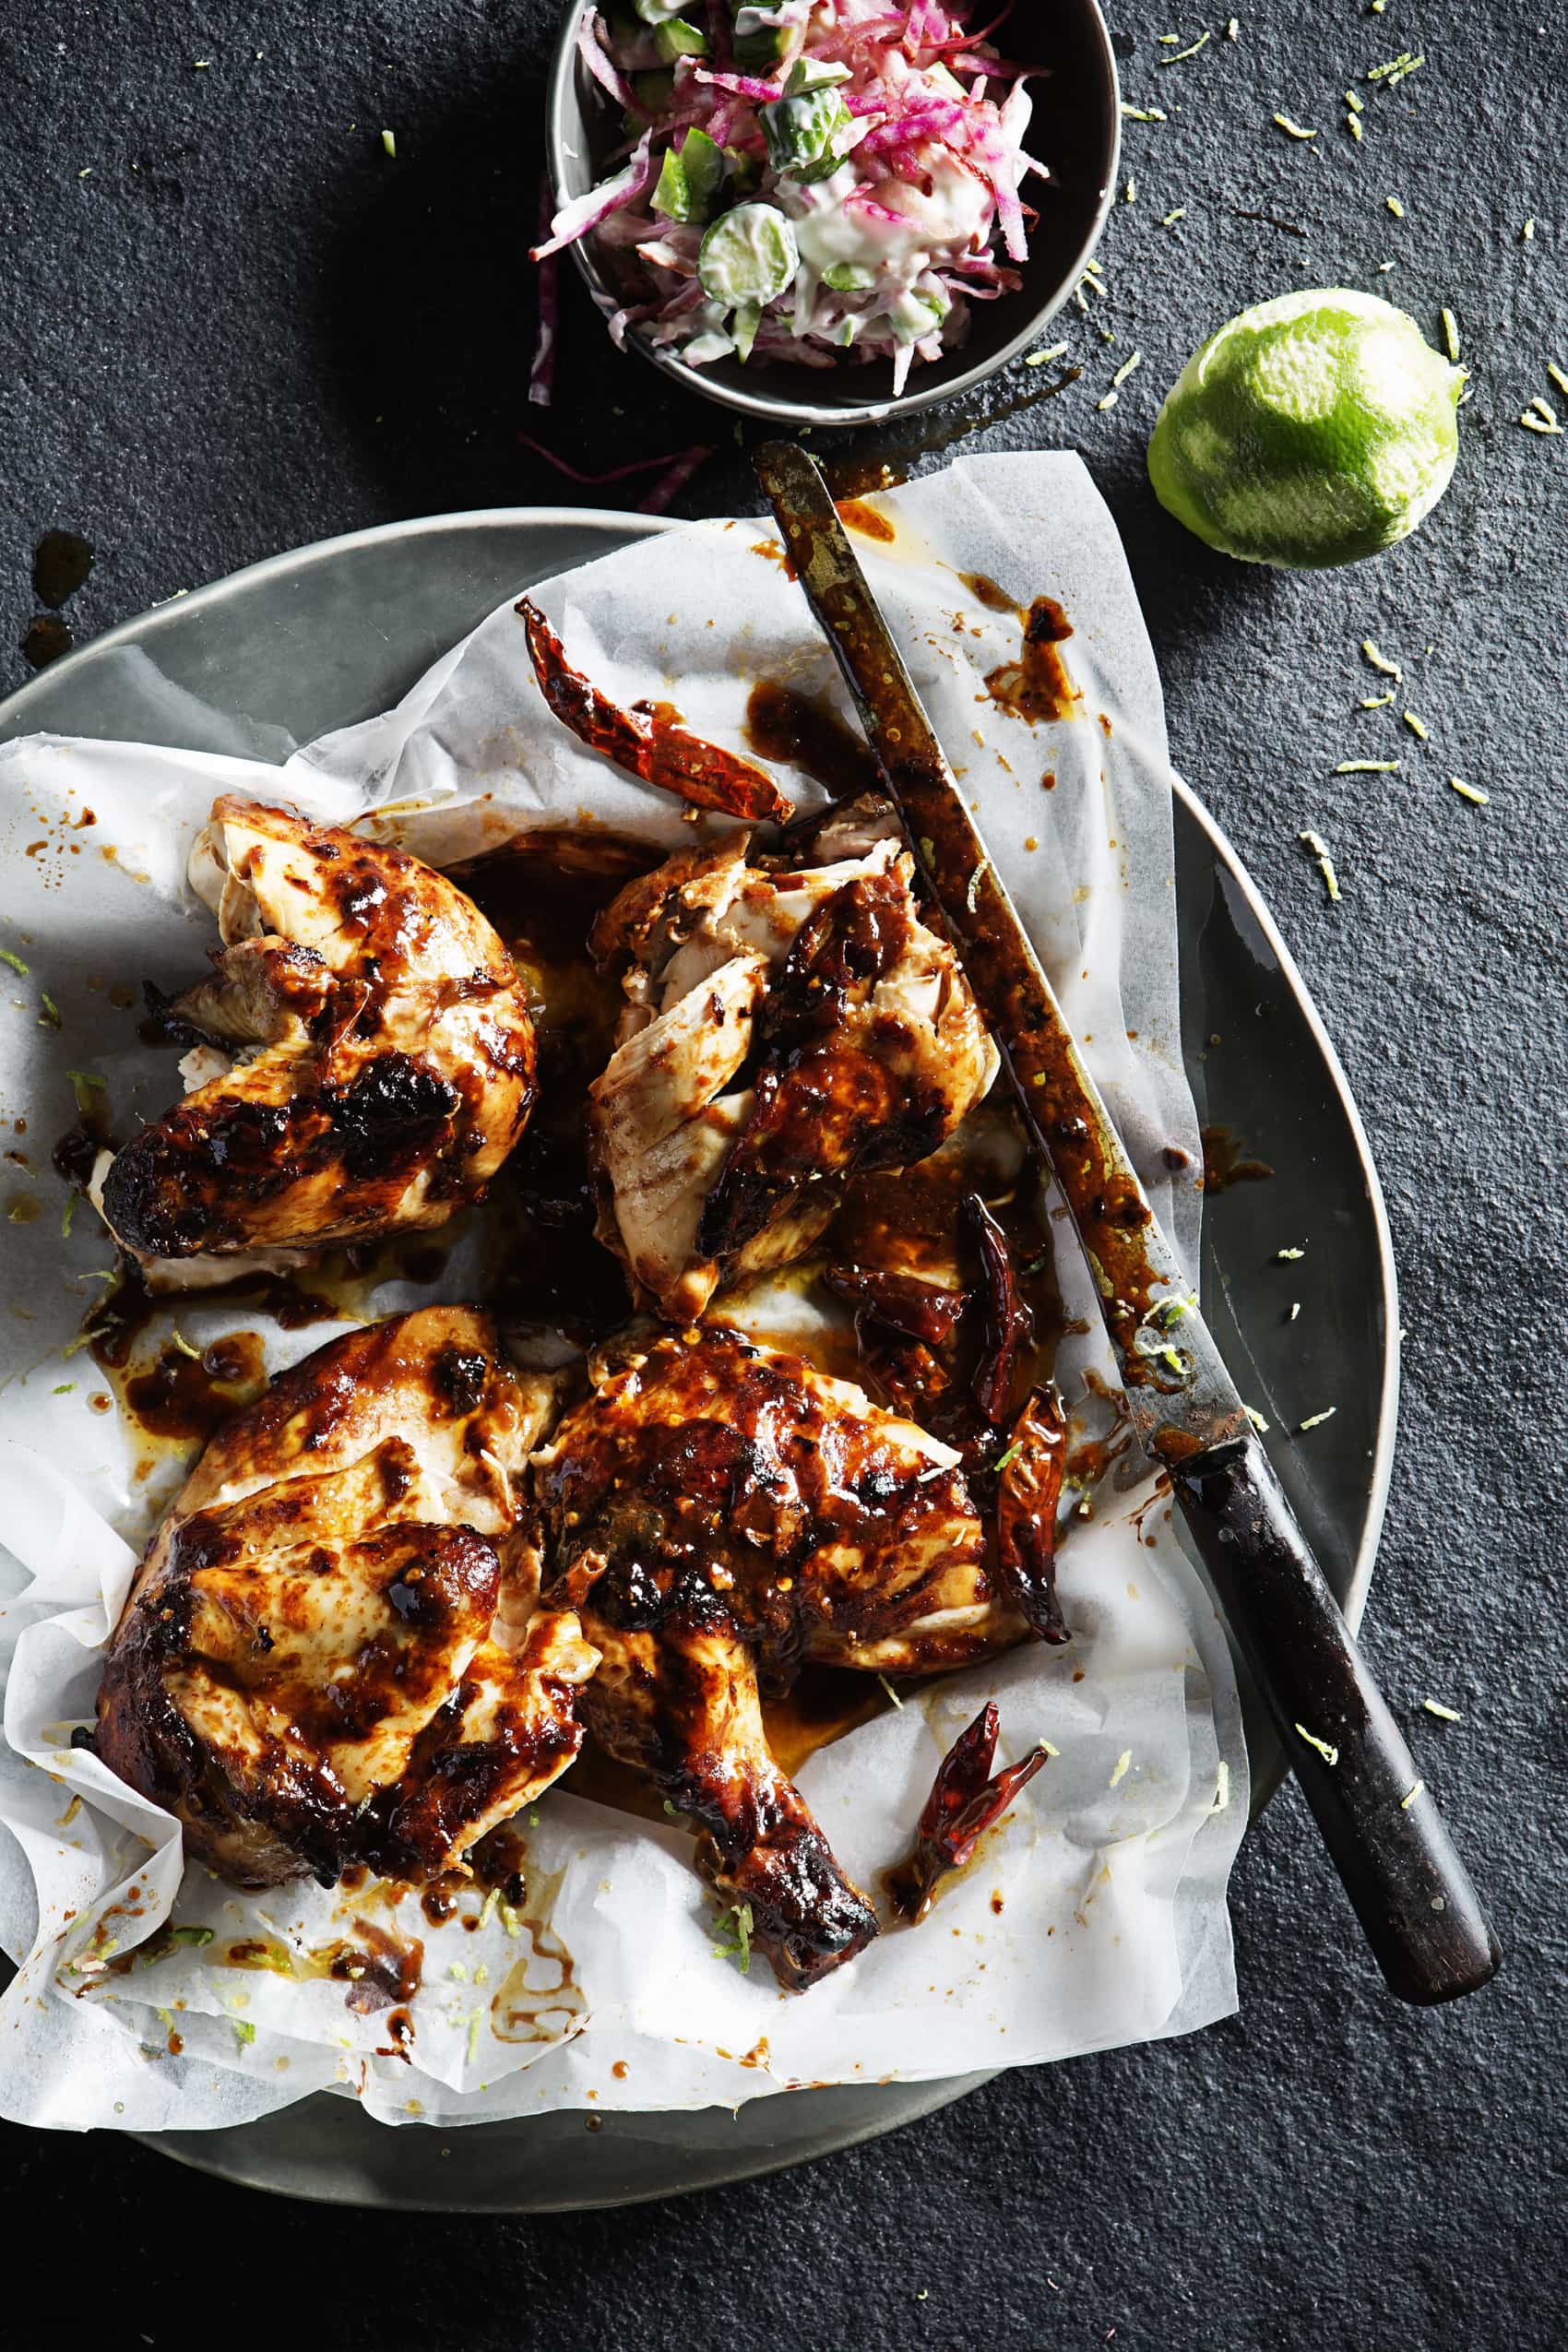 Nando's Peri Peri Grilled Chicken